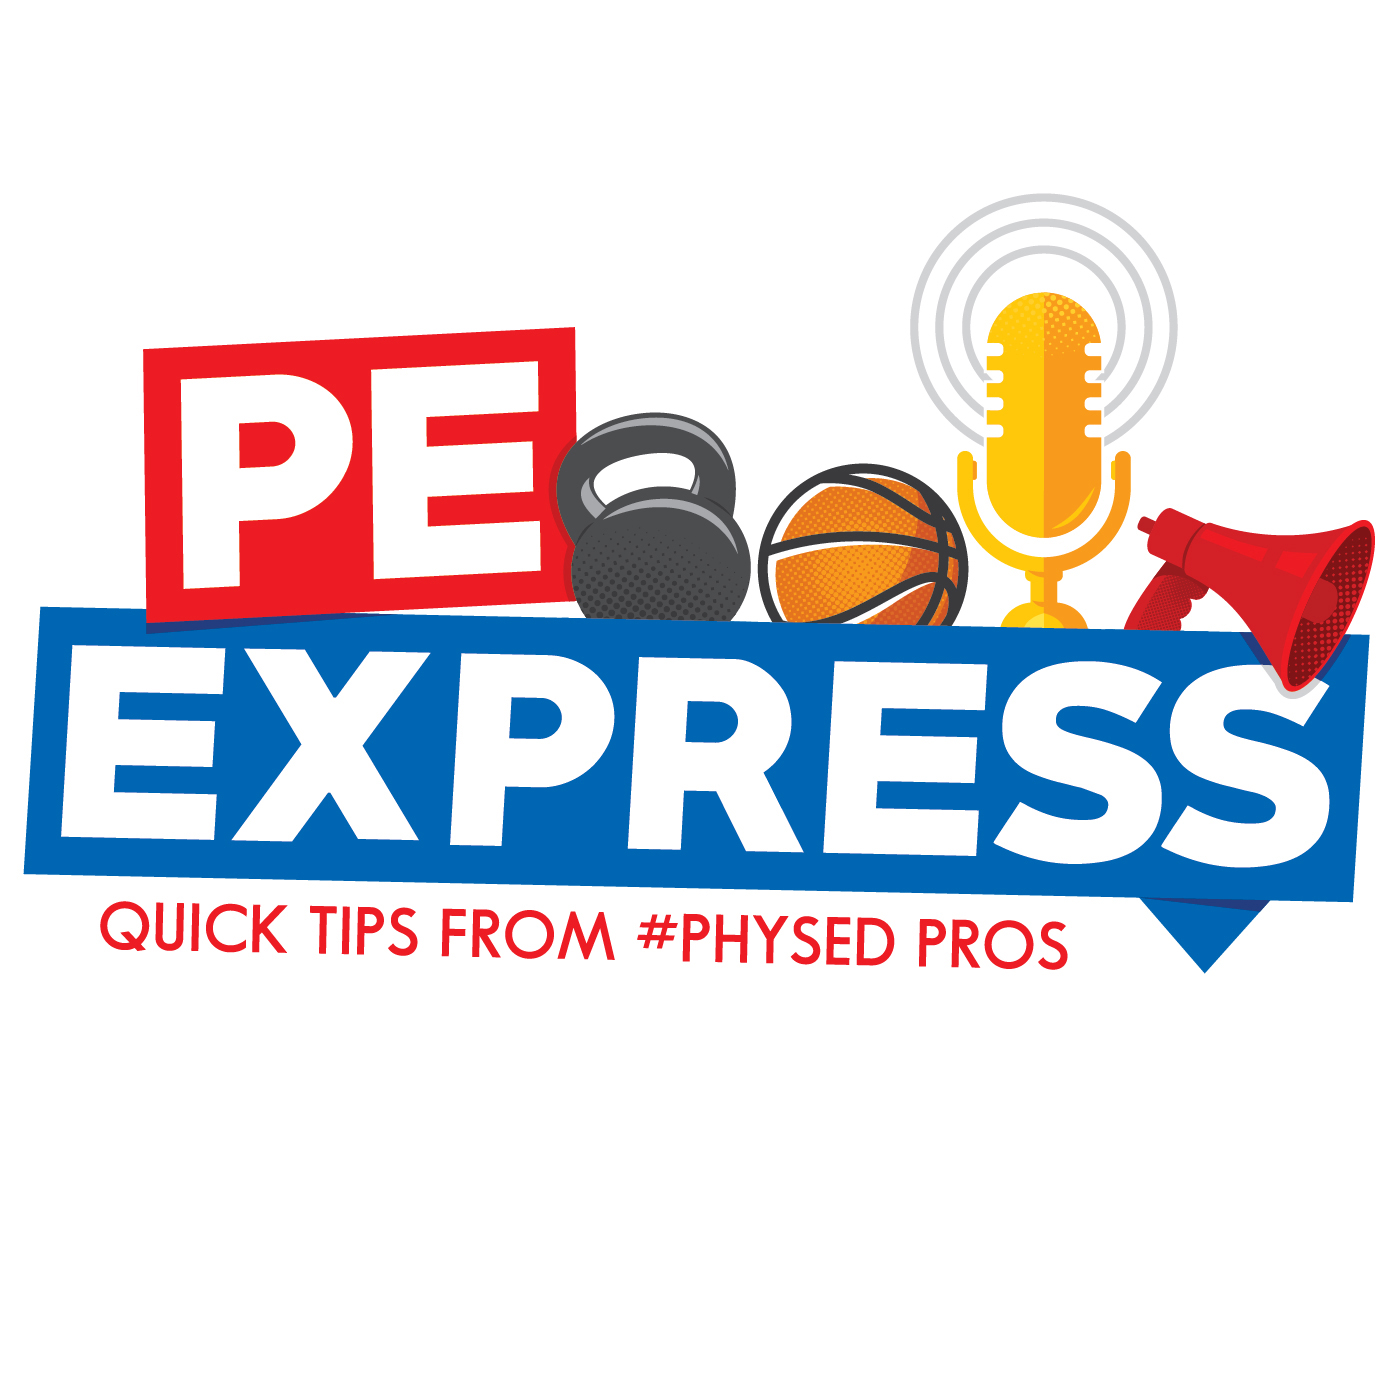 PE Express | Physical Education Quick Tips